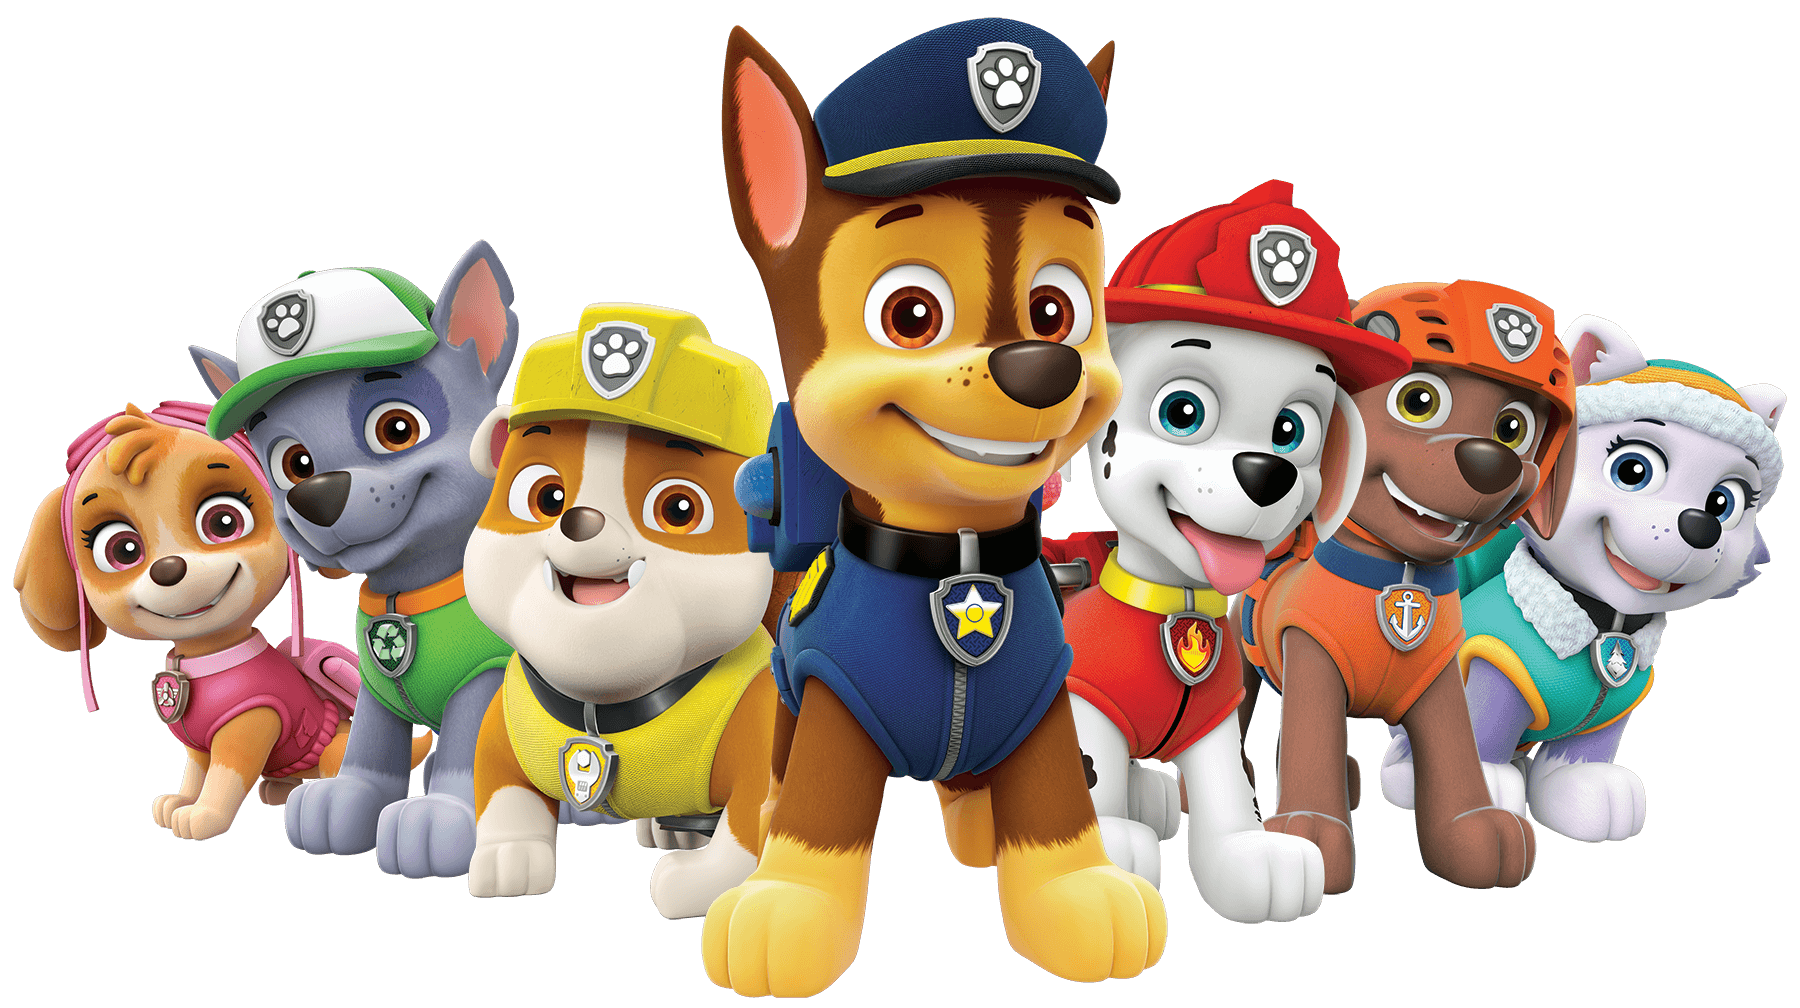 Paw patrol clipart images black and white stock Free Paw Patrol Clipart at GetDrawings.com | Free for personal use ... black and white stock